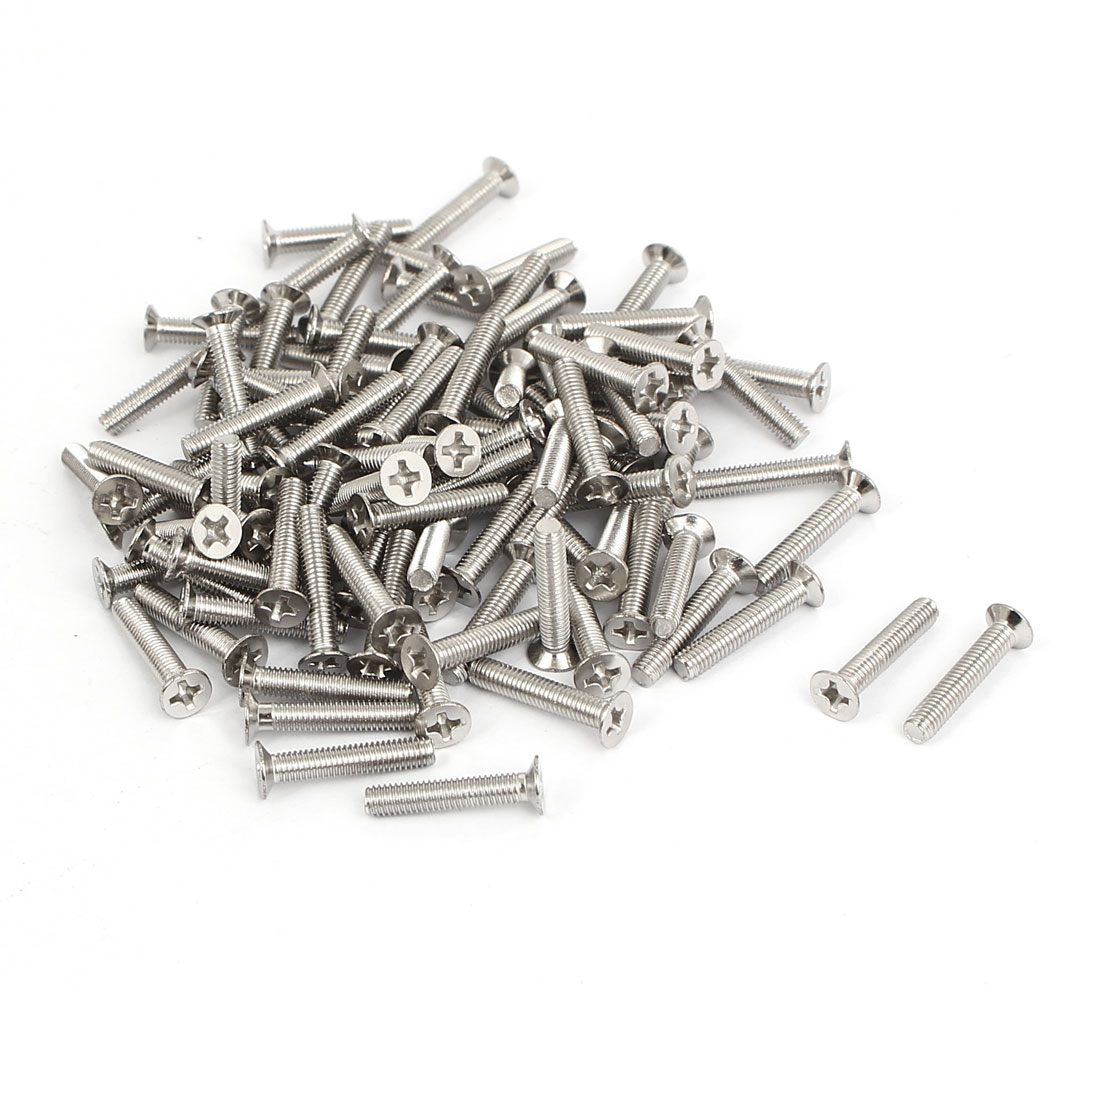 M3x16mm Stainless Steel Countersunk Flat Head Cross Phillips Screw Bolts 100pcs